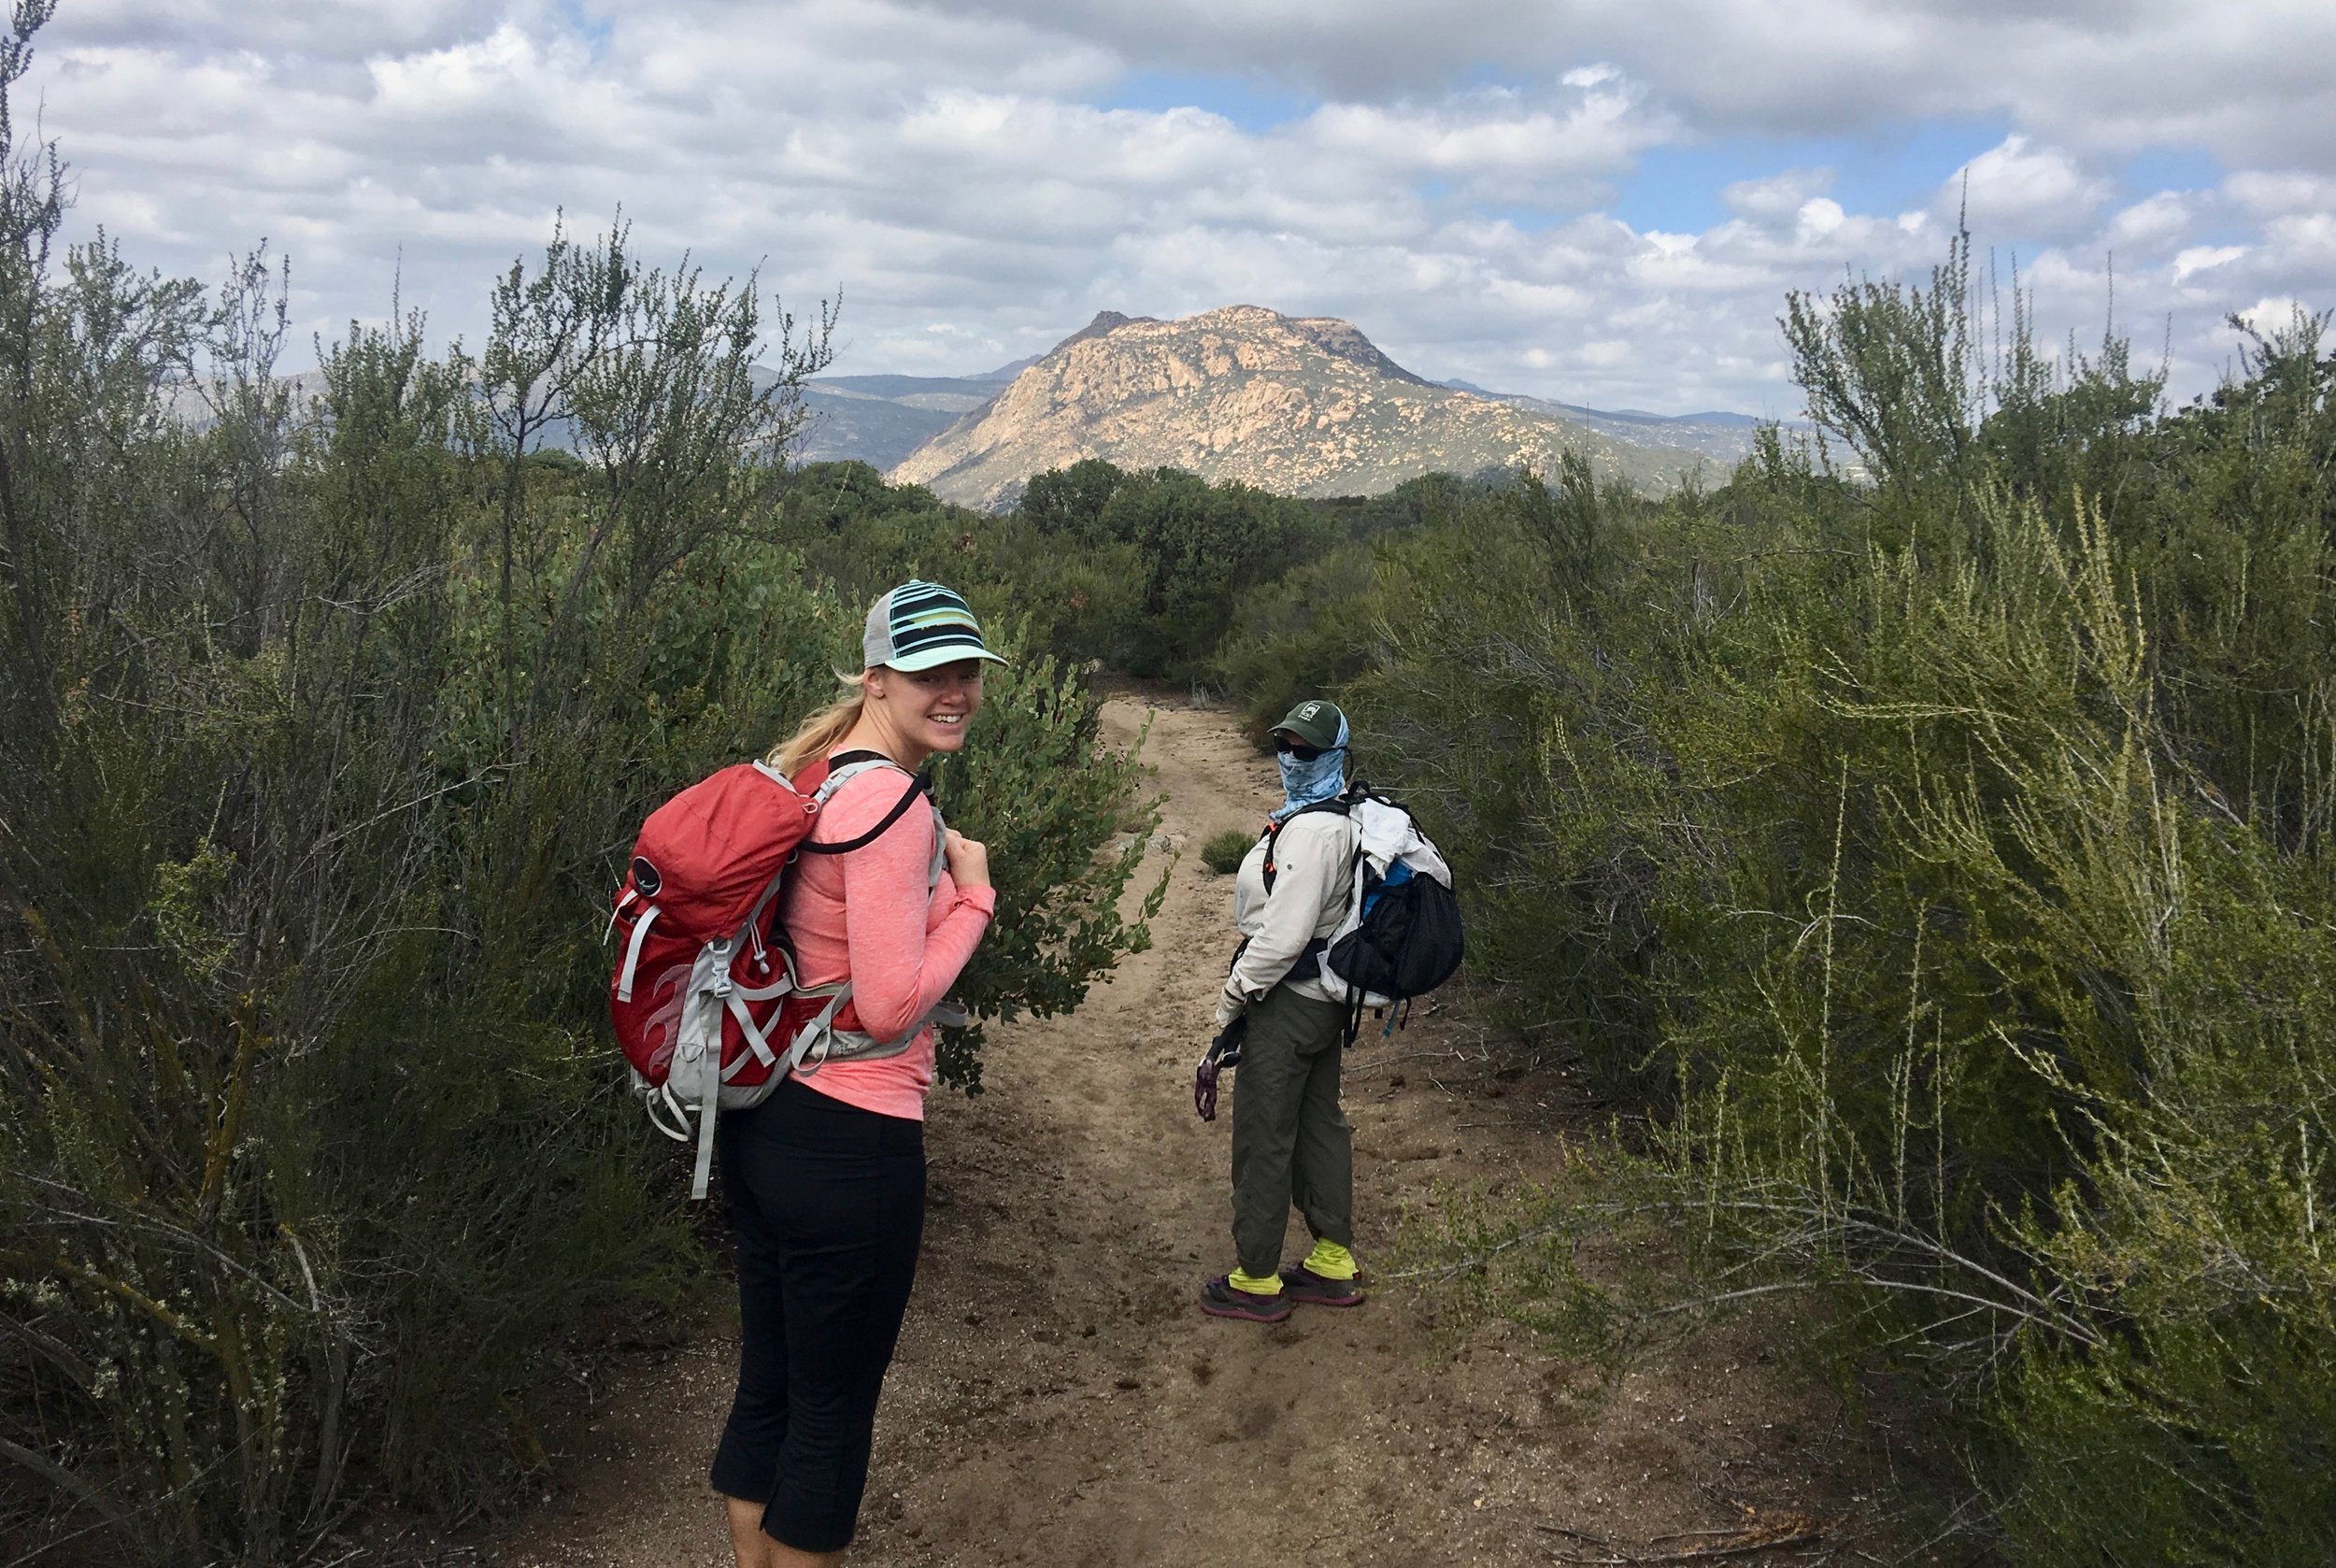 Two hikers that we meet that started today are Jason from Kansas and Spiceman who got his trail name from hiking the Appalachian trail. They are both excited and quickly pass us by.  This year has been very dry so water may be challenging to find.  We are hoping that enough water has fallen for some of the plants to bloom. We pass by an agave that must have had enough water stored to send out its flowers.